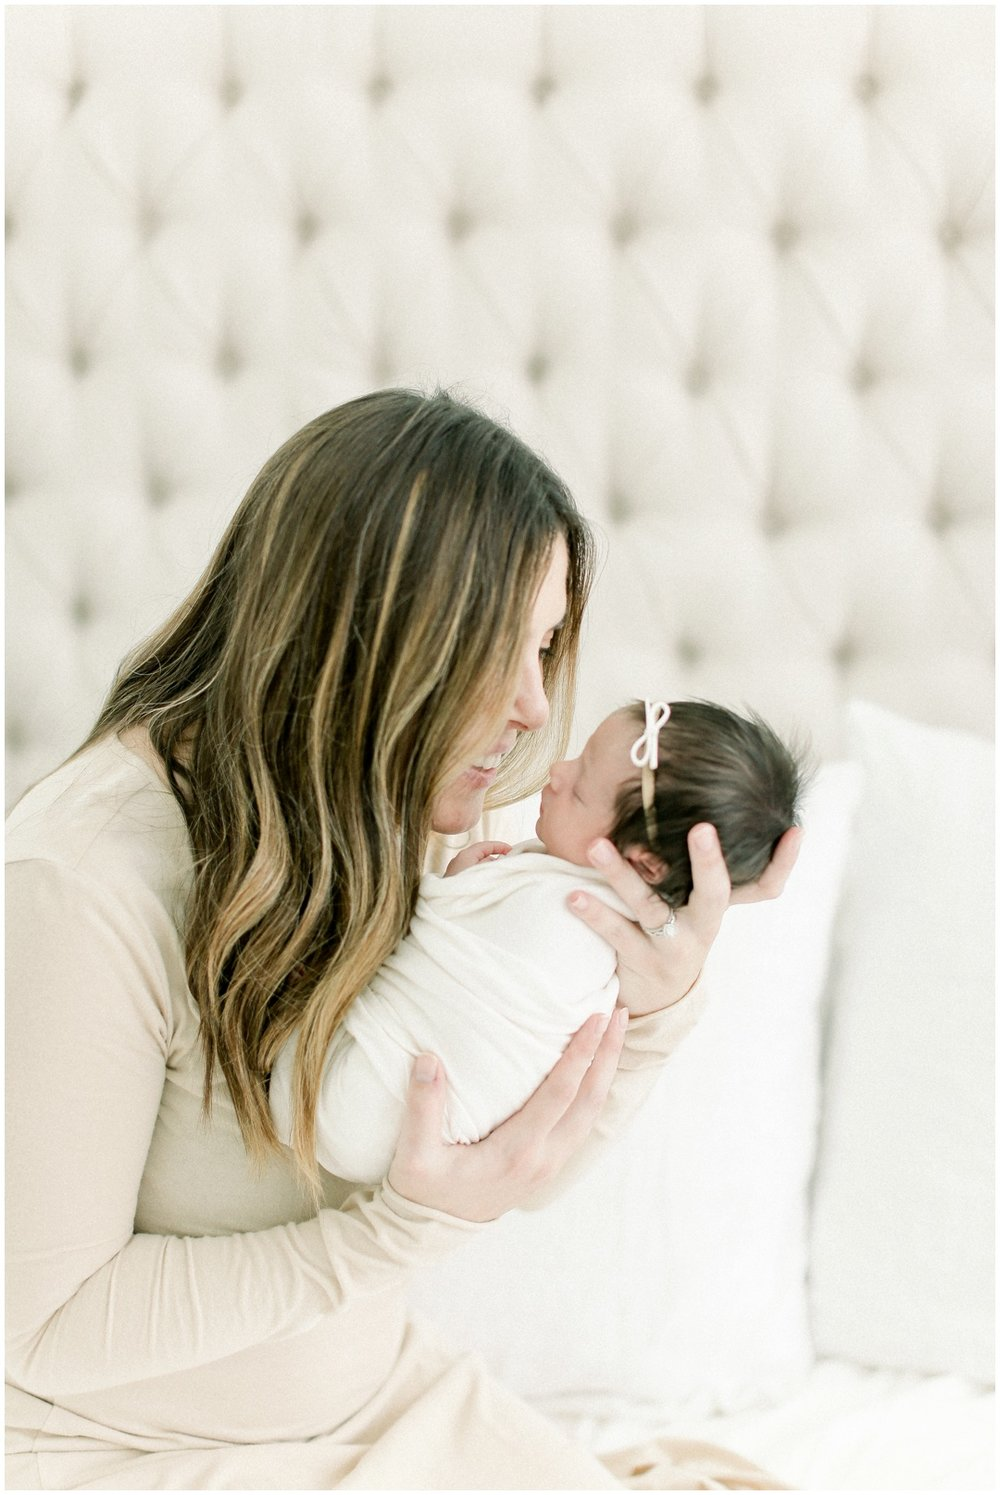 Newport_Beach_Newborn_Light_Airy_Natural_Photographer_Newport_Beach_In-Home_Photographer_Orange_County_Family_Photographer_Cori_Kleckner_Photography_Huntington_Beach_Photographer_Family_OC_Newborn_Blair_Sharpe_Ricky_Sharpe_Newborn_Family__3180.jpg